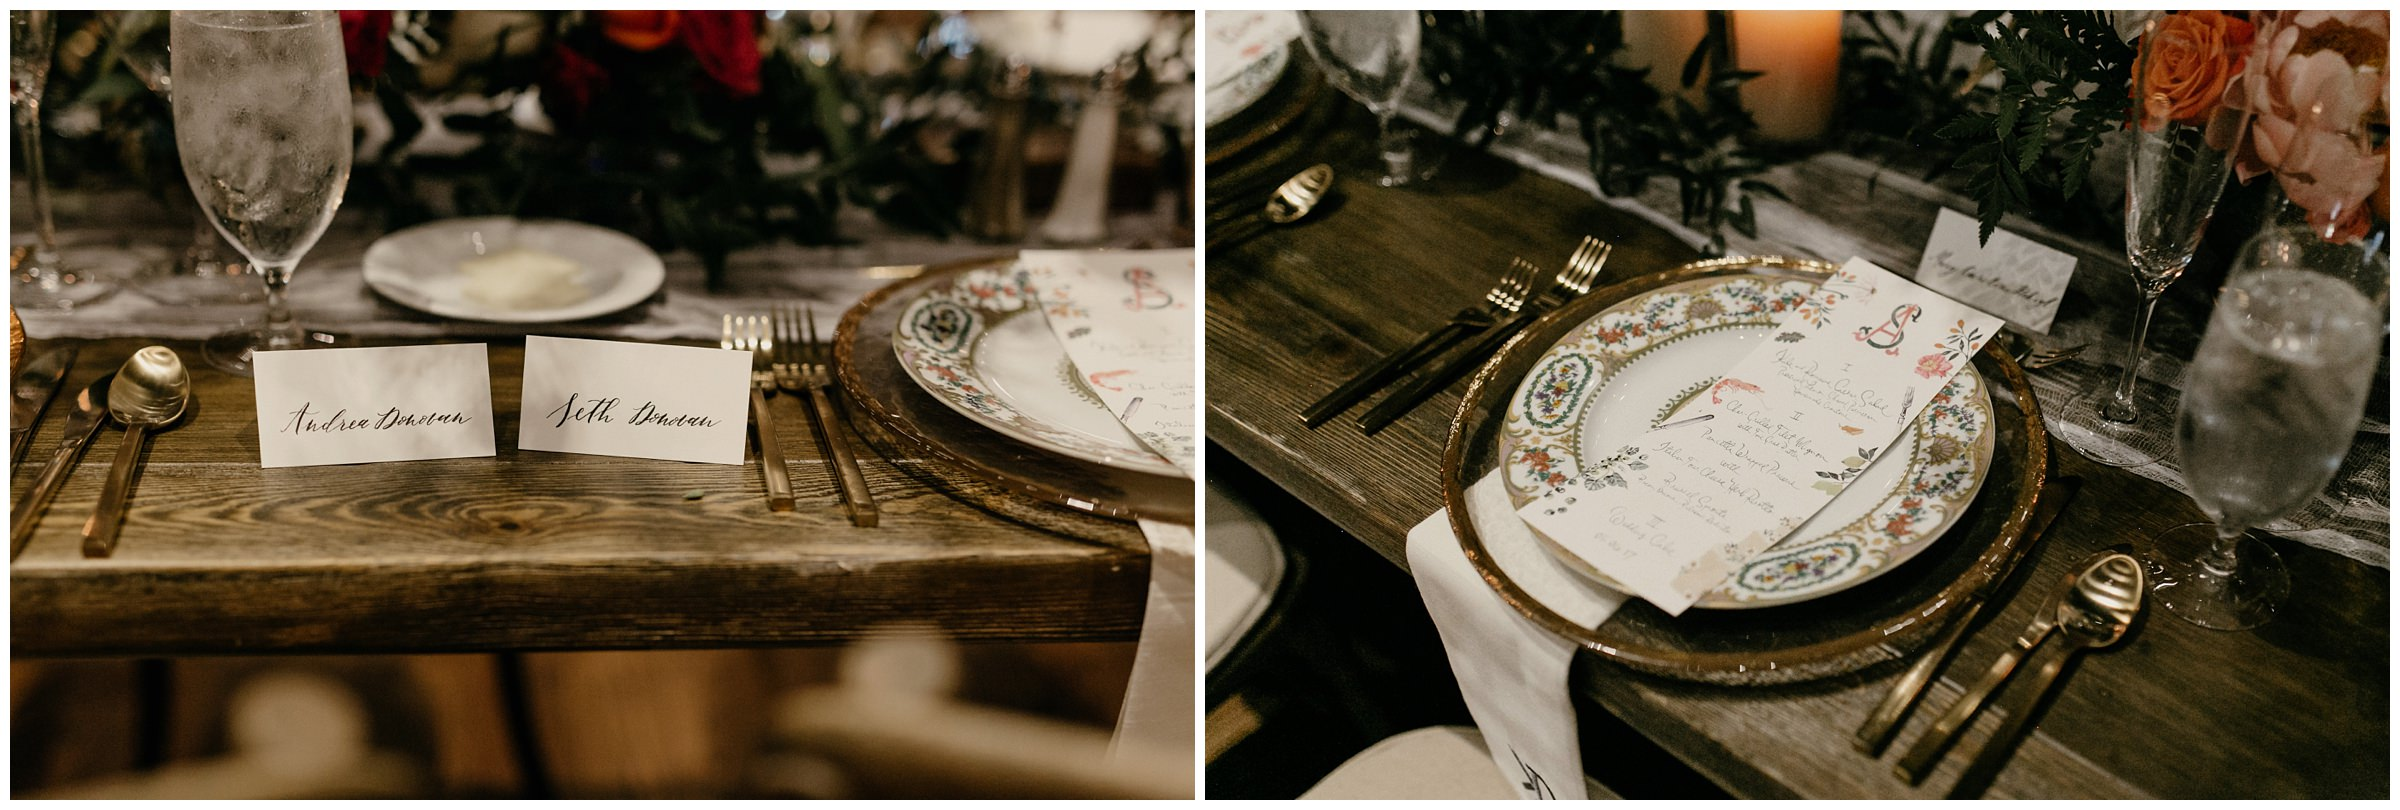 vintage plate design at southern hills country club wedding